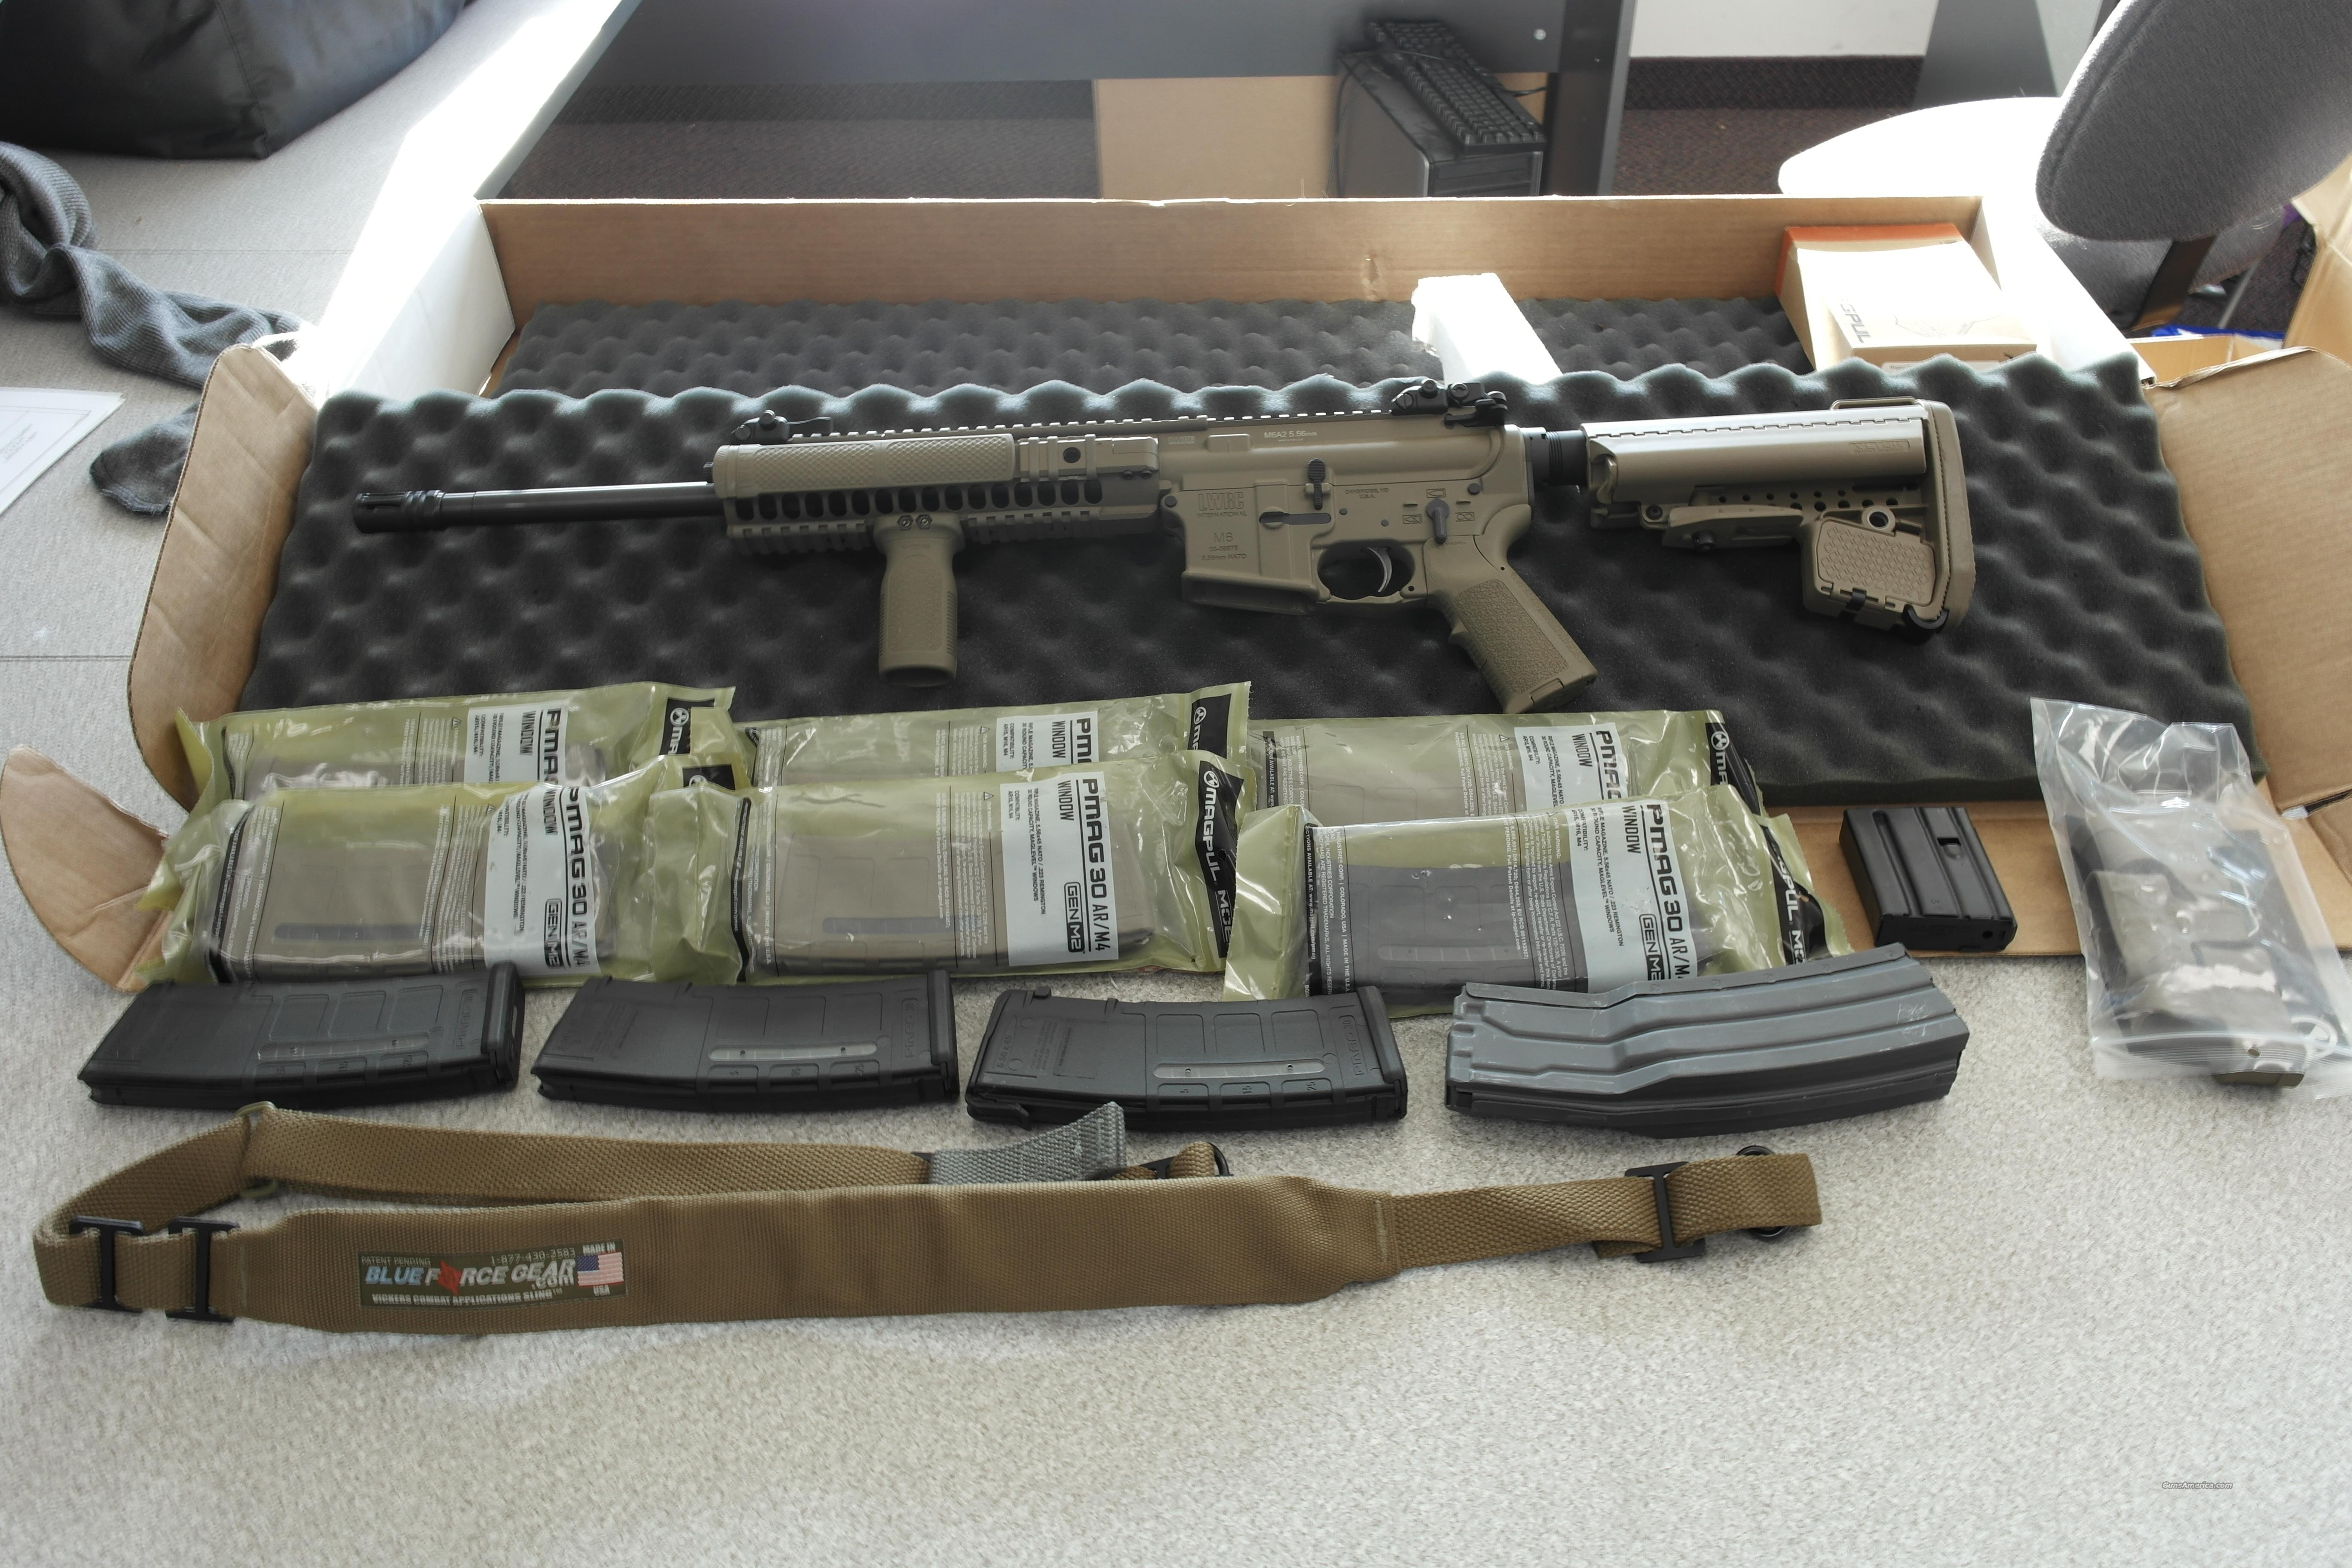 LWRC M6A2 FDE, Magpul, Pmags, Sling  Guns > Rifles > AR-15 Rifles - Small Manufacturers > Complete Rifle